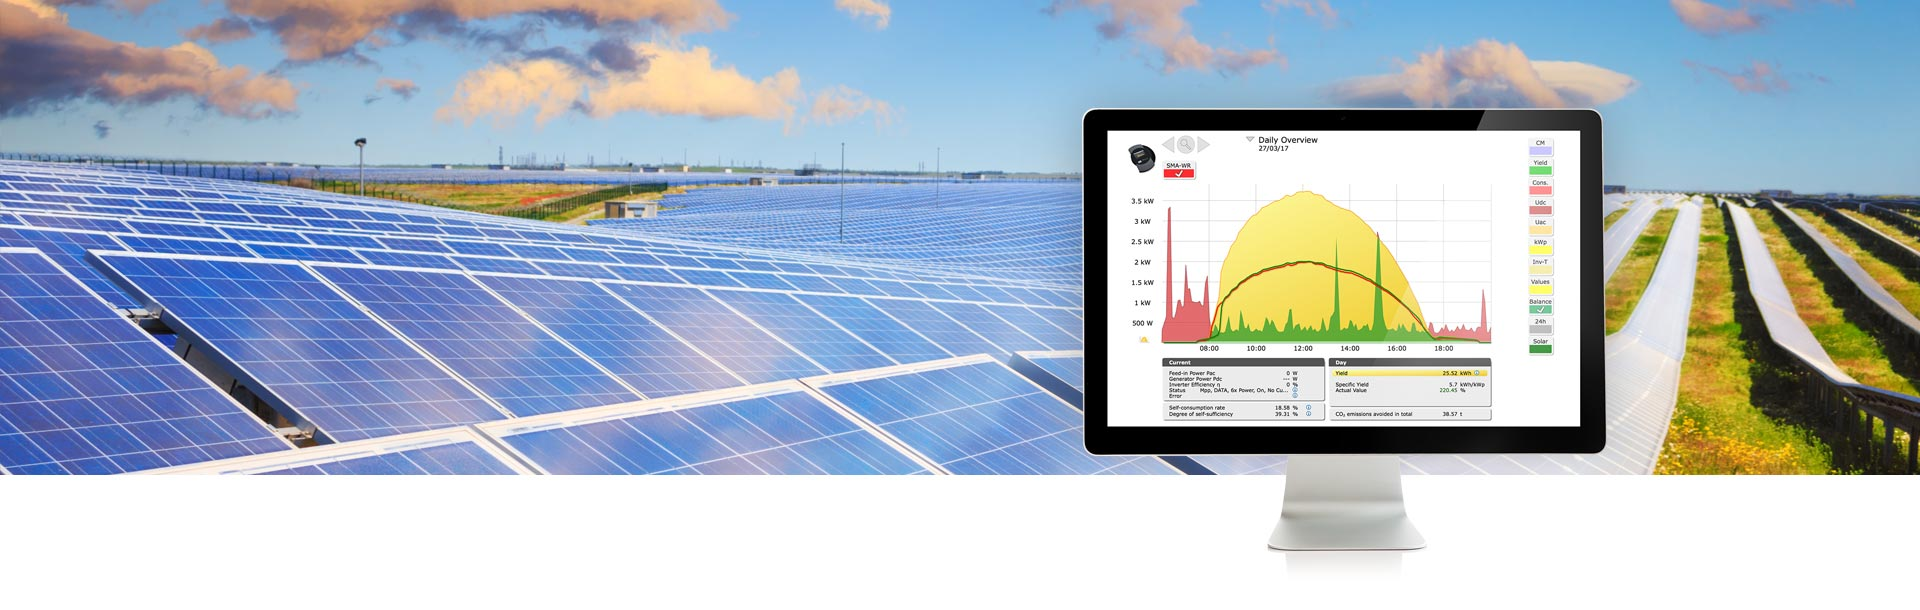 En solar log all round talent for photovoltaic publicscrutiny Image collections